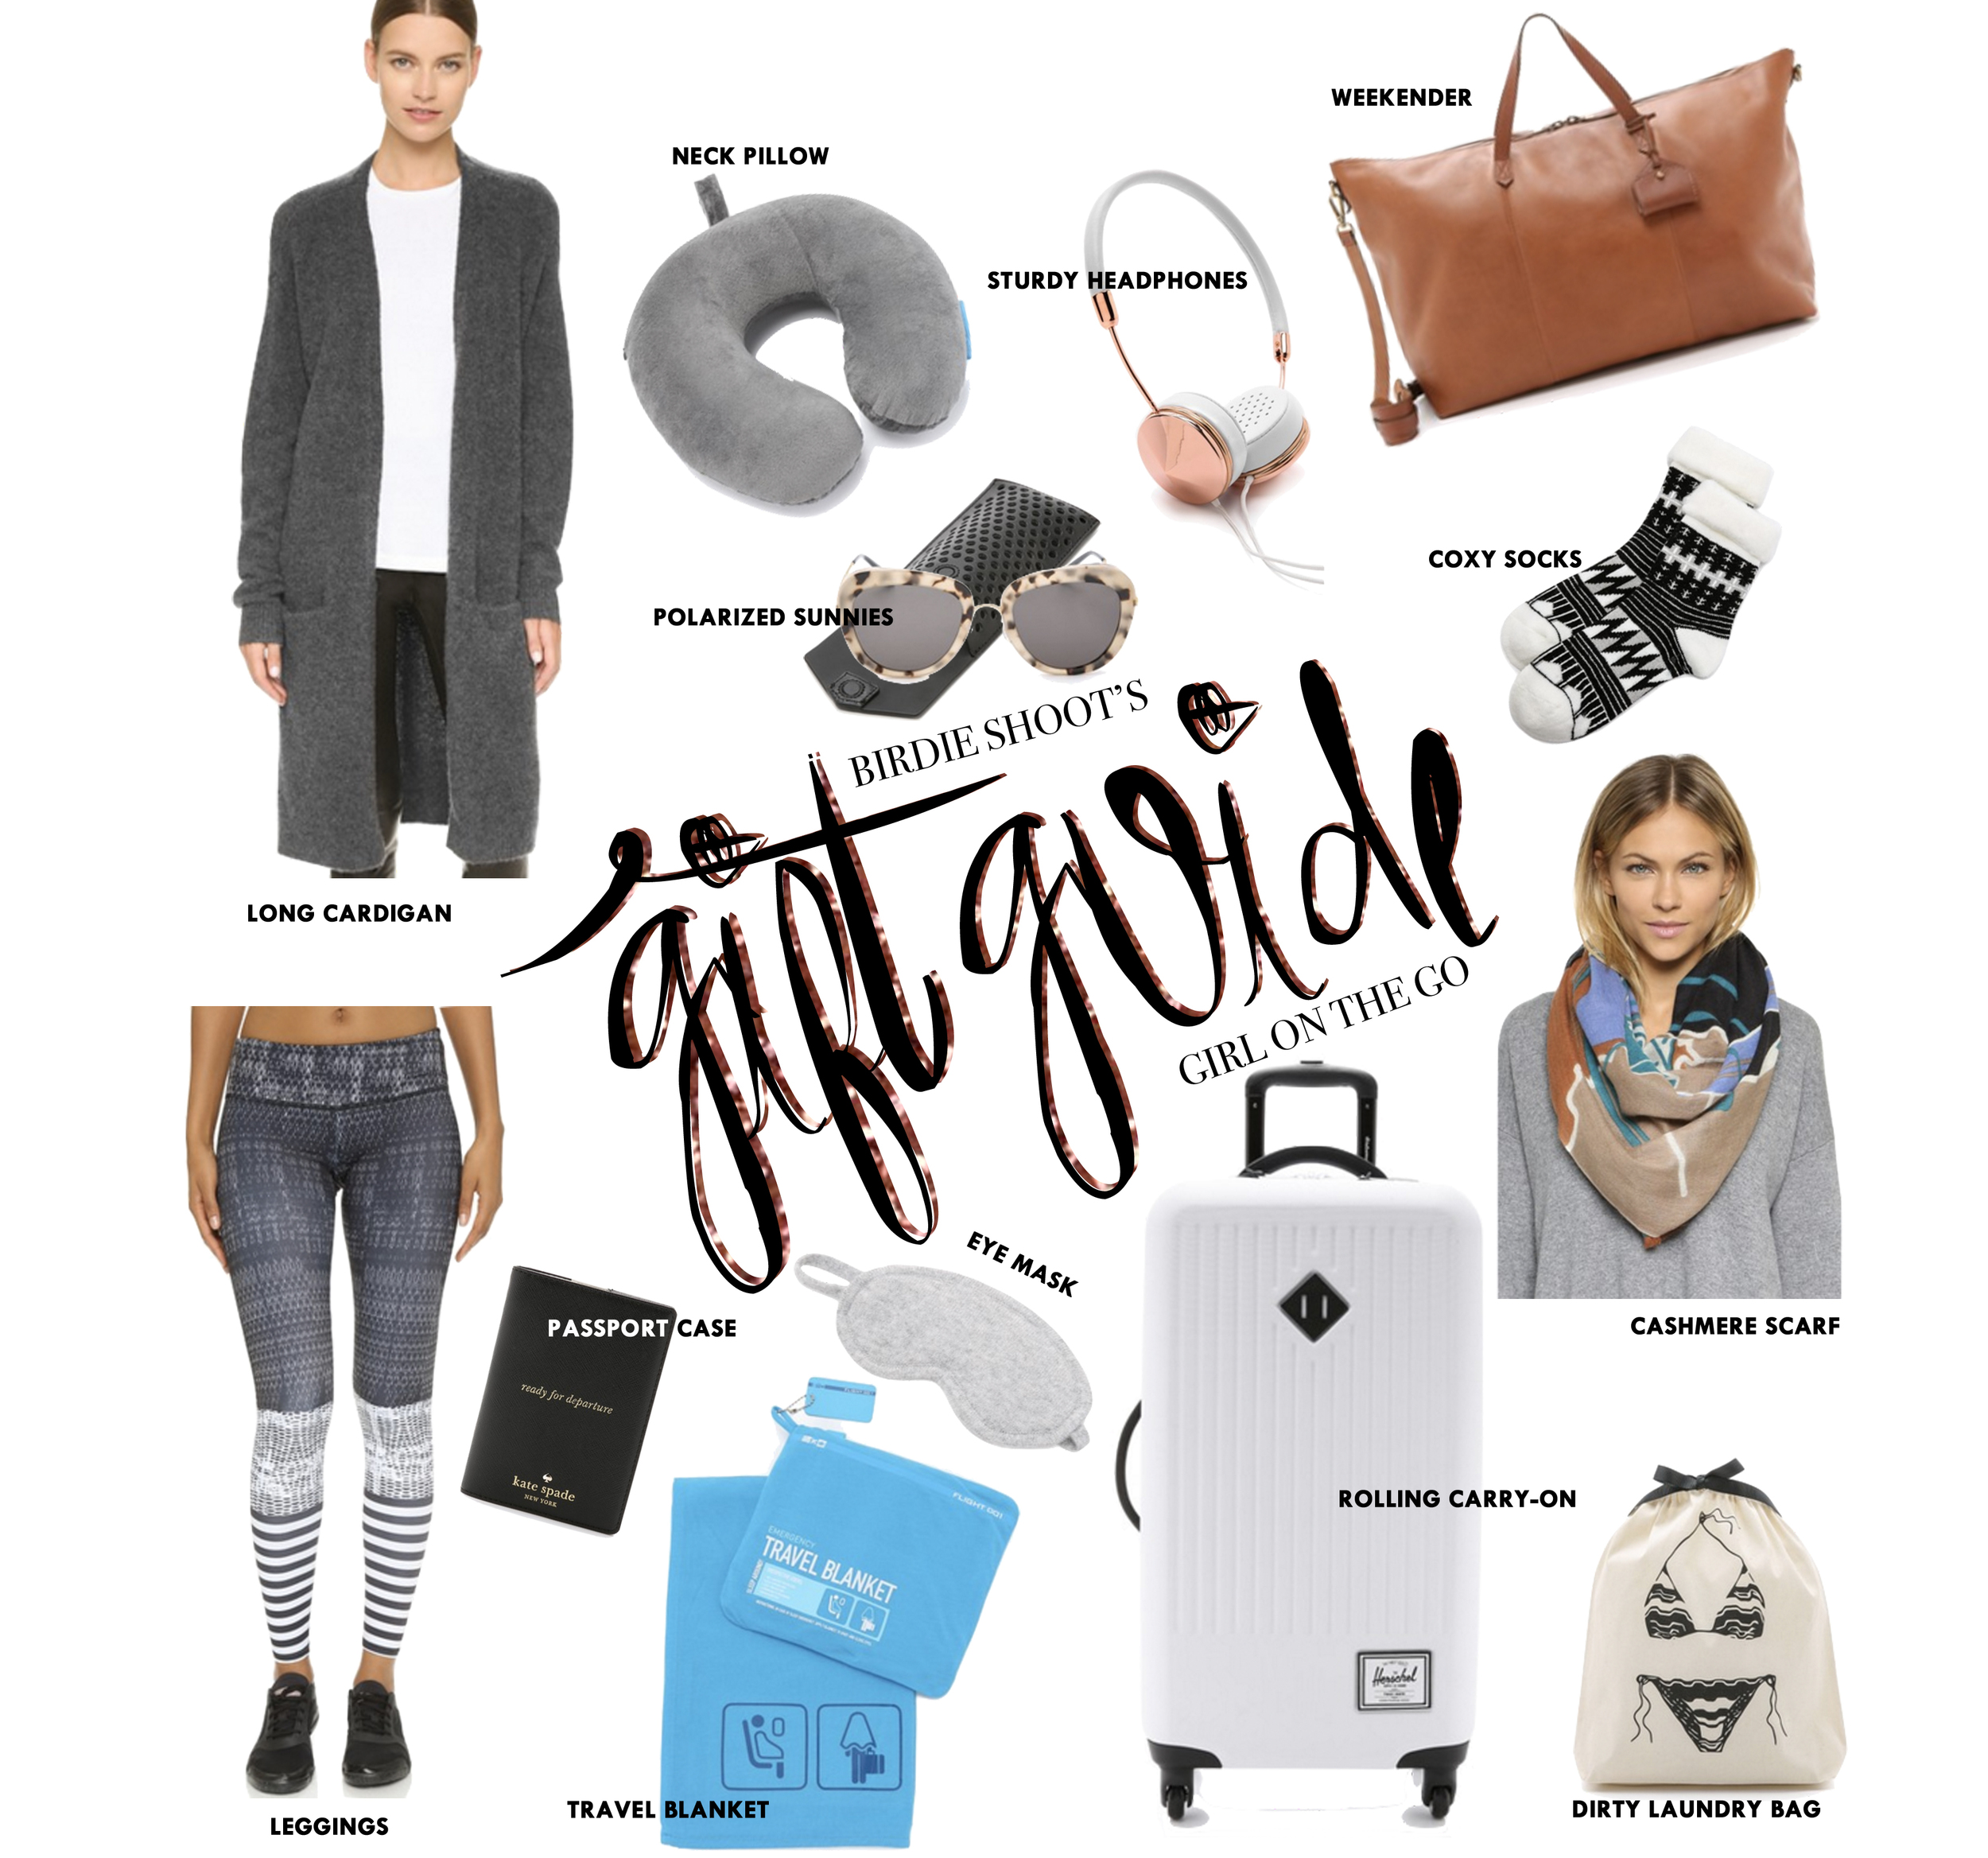 Gift Guide, Girl on the Go via. Birdie Shoots